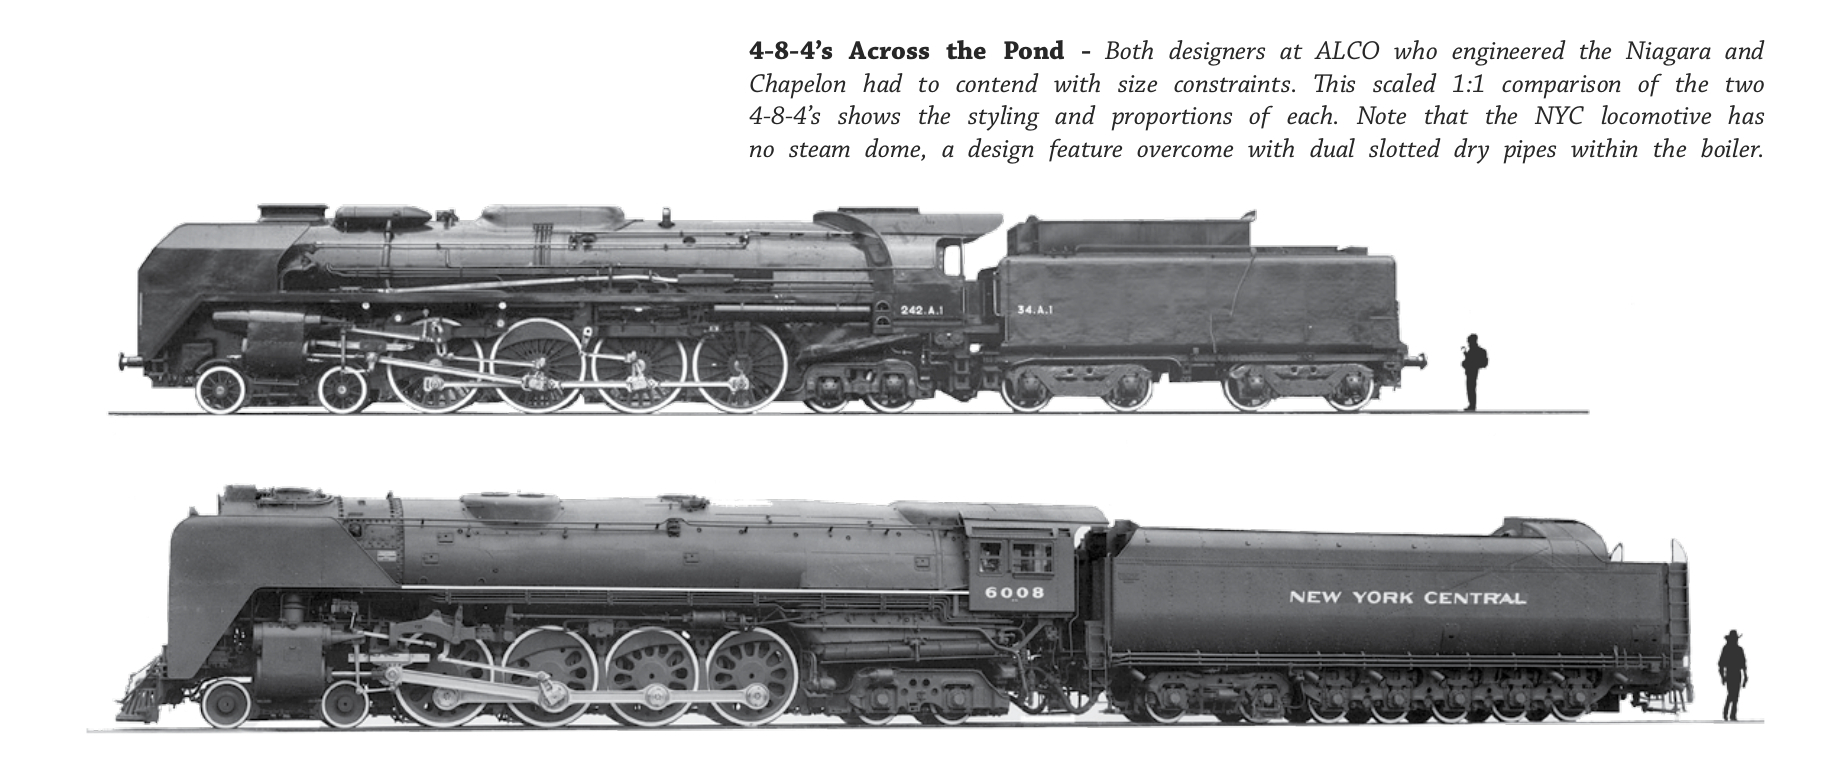 Paul Keifer was the only American designer to incorporate some of André Chapelon's ideas into his design of the New York Central's S1 Niagara. This photo compares the S1 Niagara with André Chapelon's last locomotive the 242A1. (Picture courtesy Coalition for Sustainable Steam).